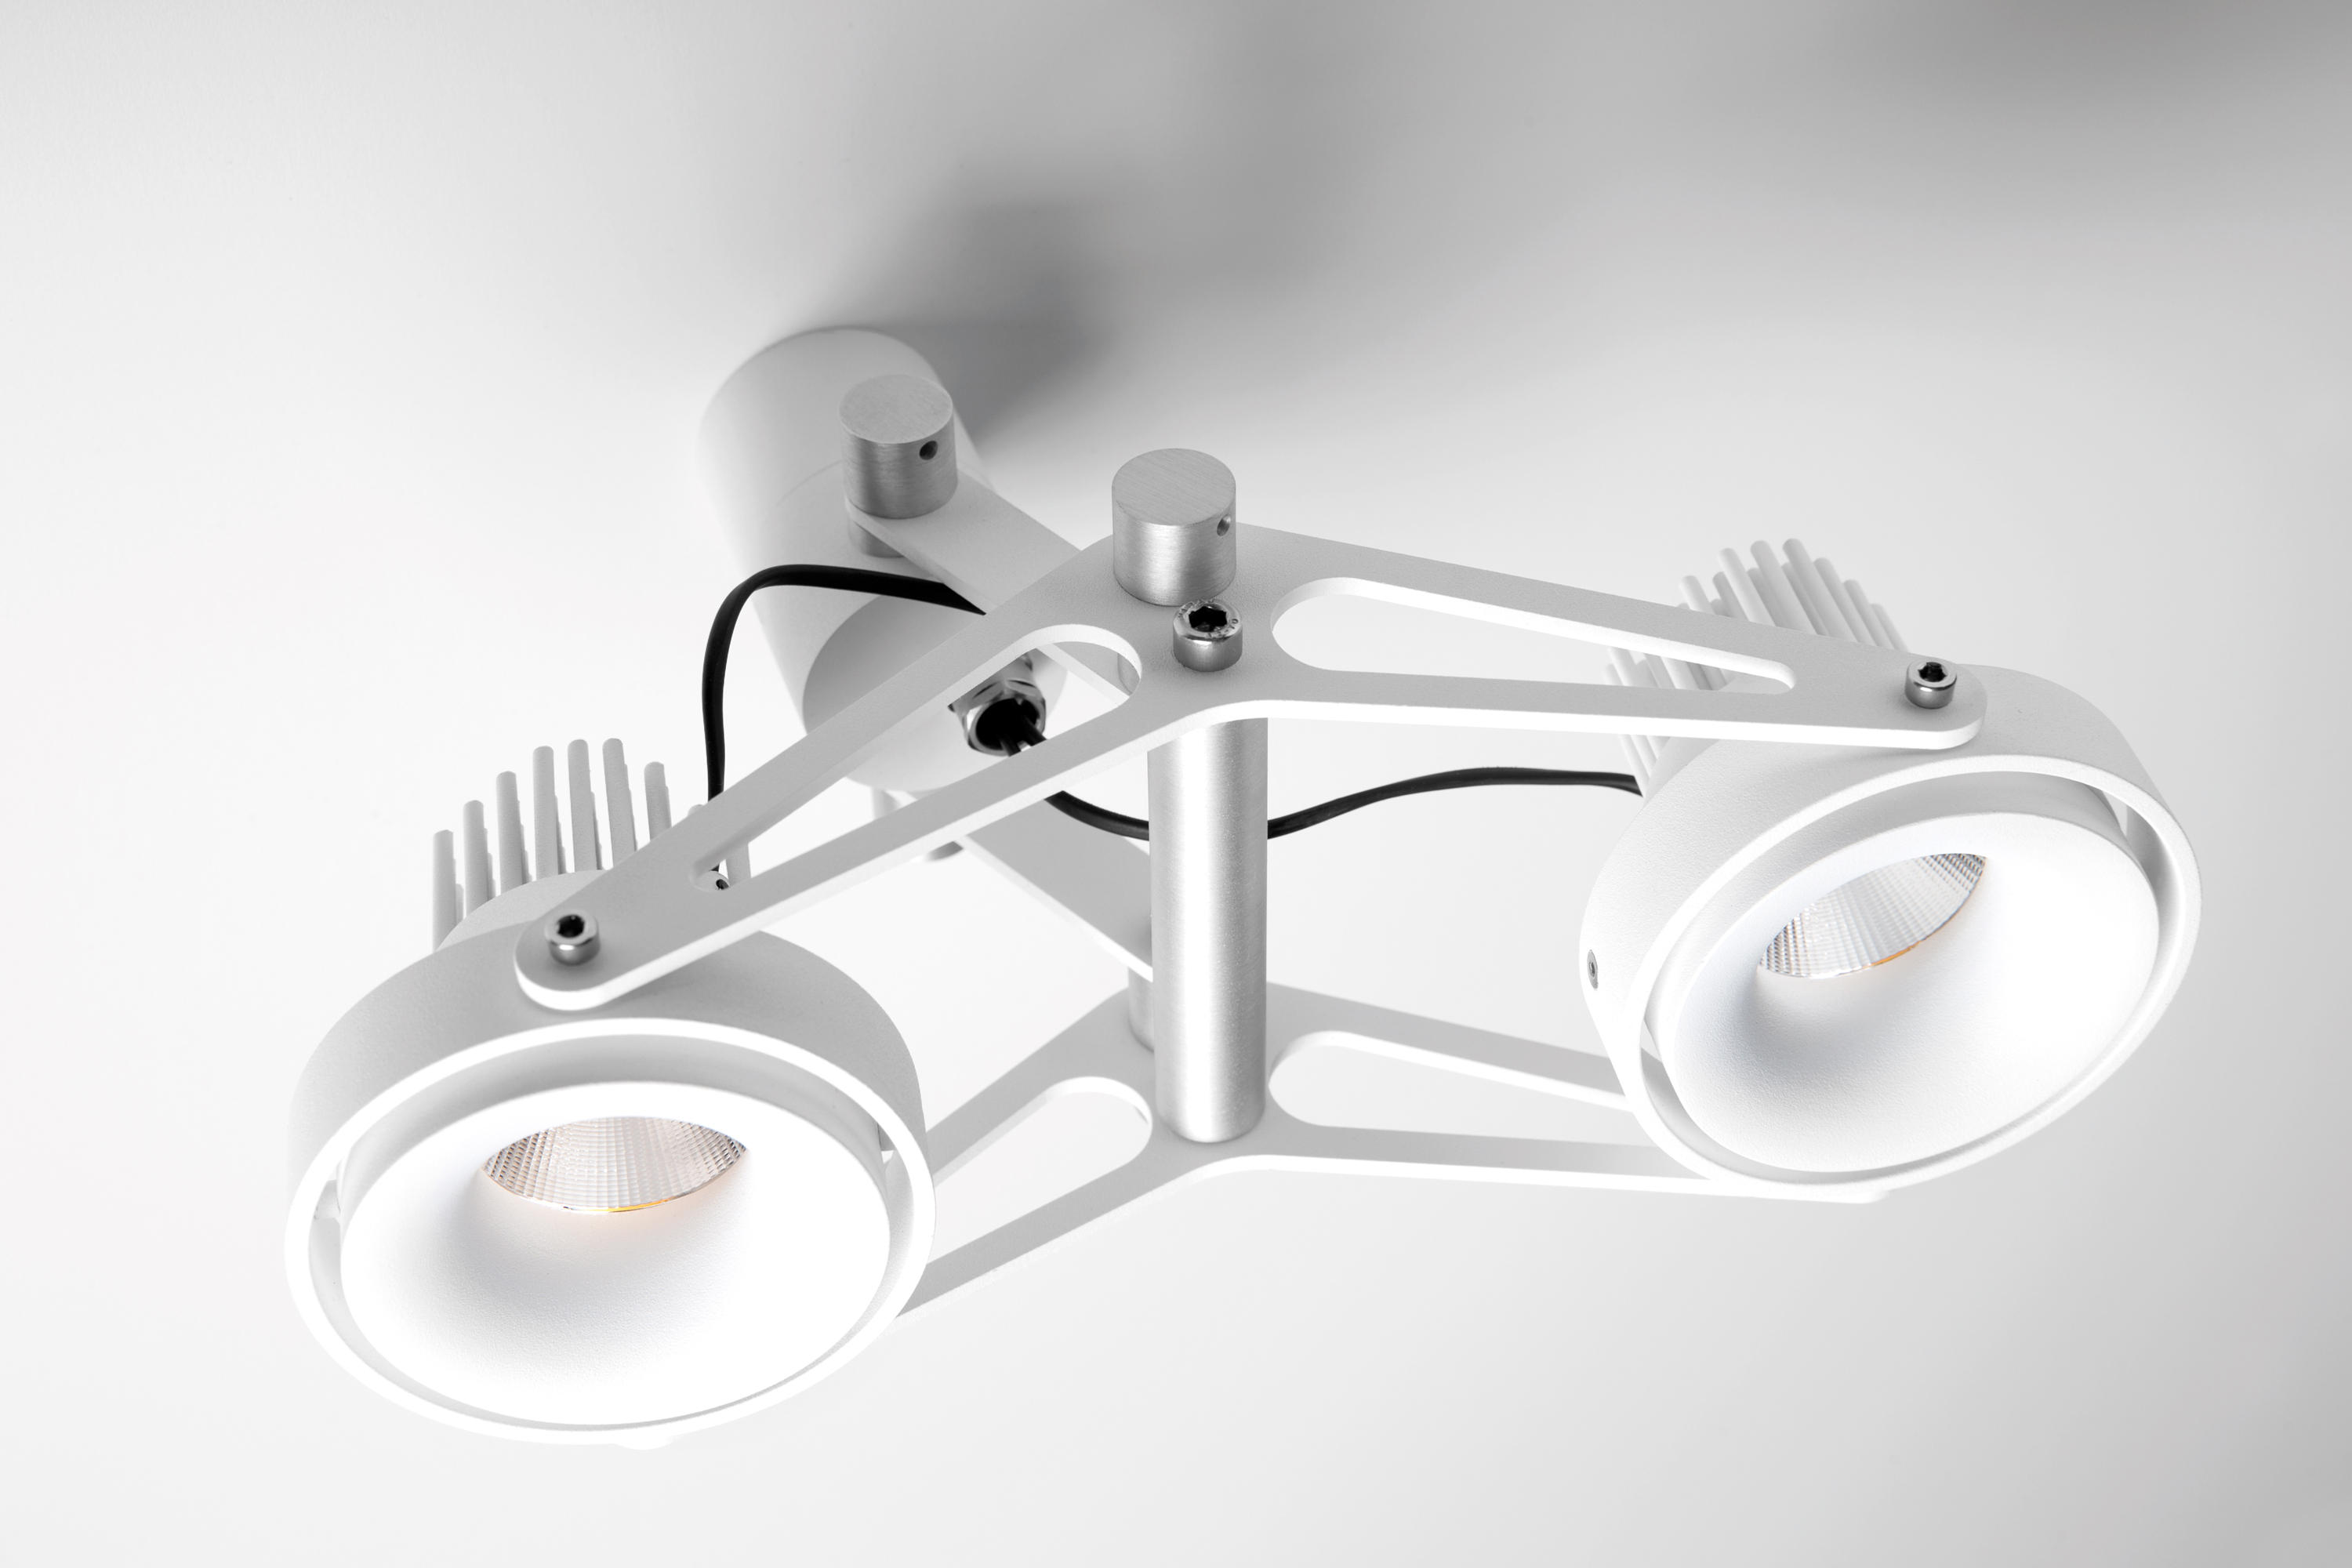 Nomad For Smart Rings 2x LED GE By Modular Lighting Instruments | Ceiling Mounted  Spotlights ...